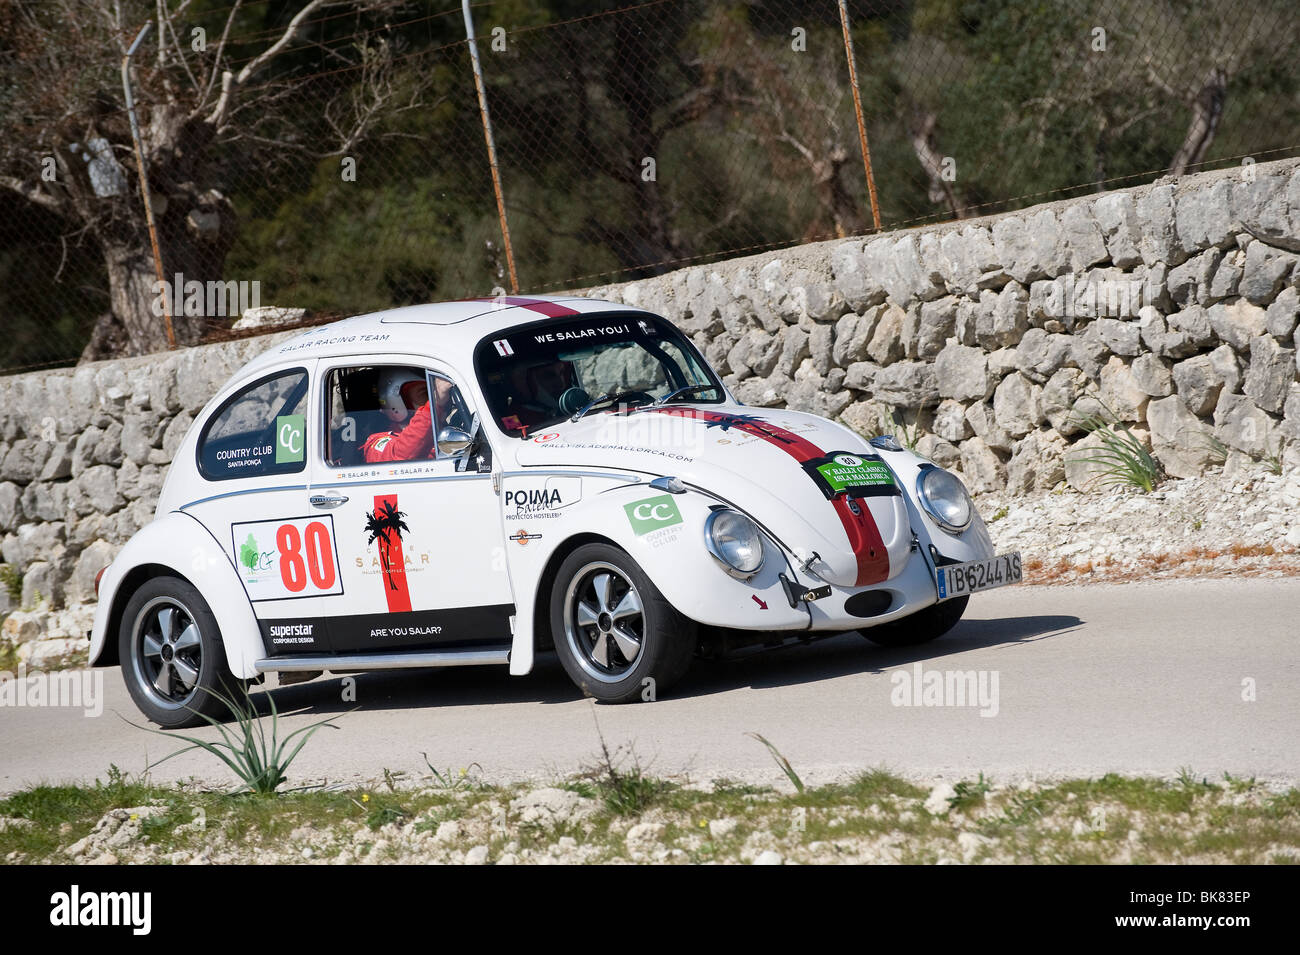 1965 VW beetle classic sports car taking part in a rally in Spain. - Stock Image